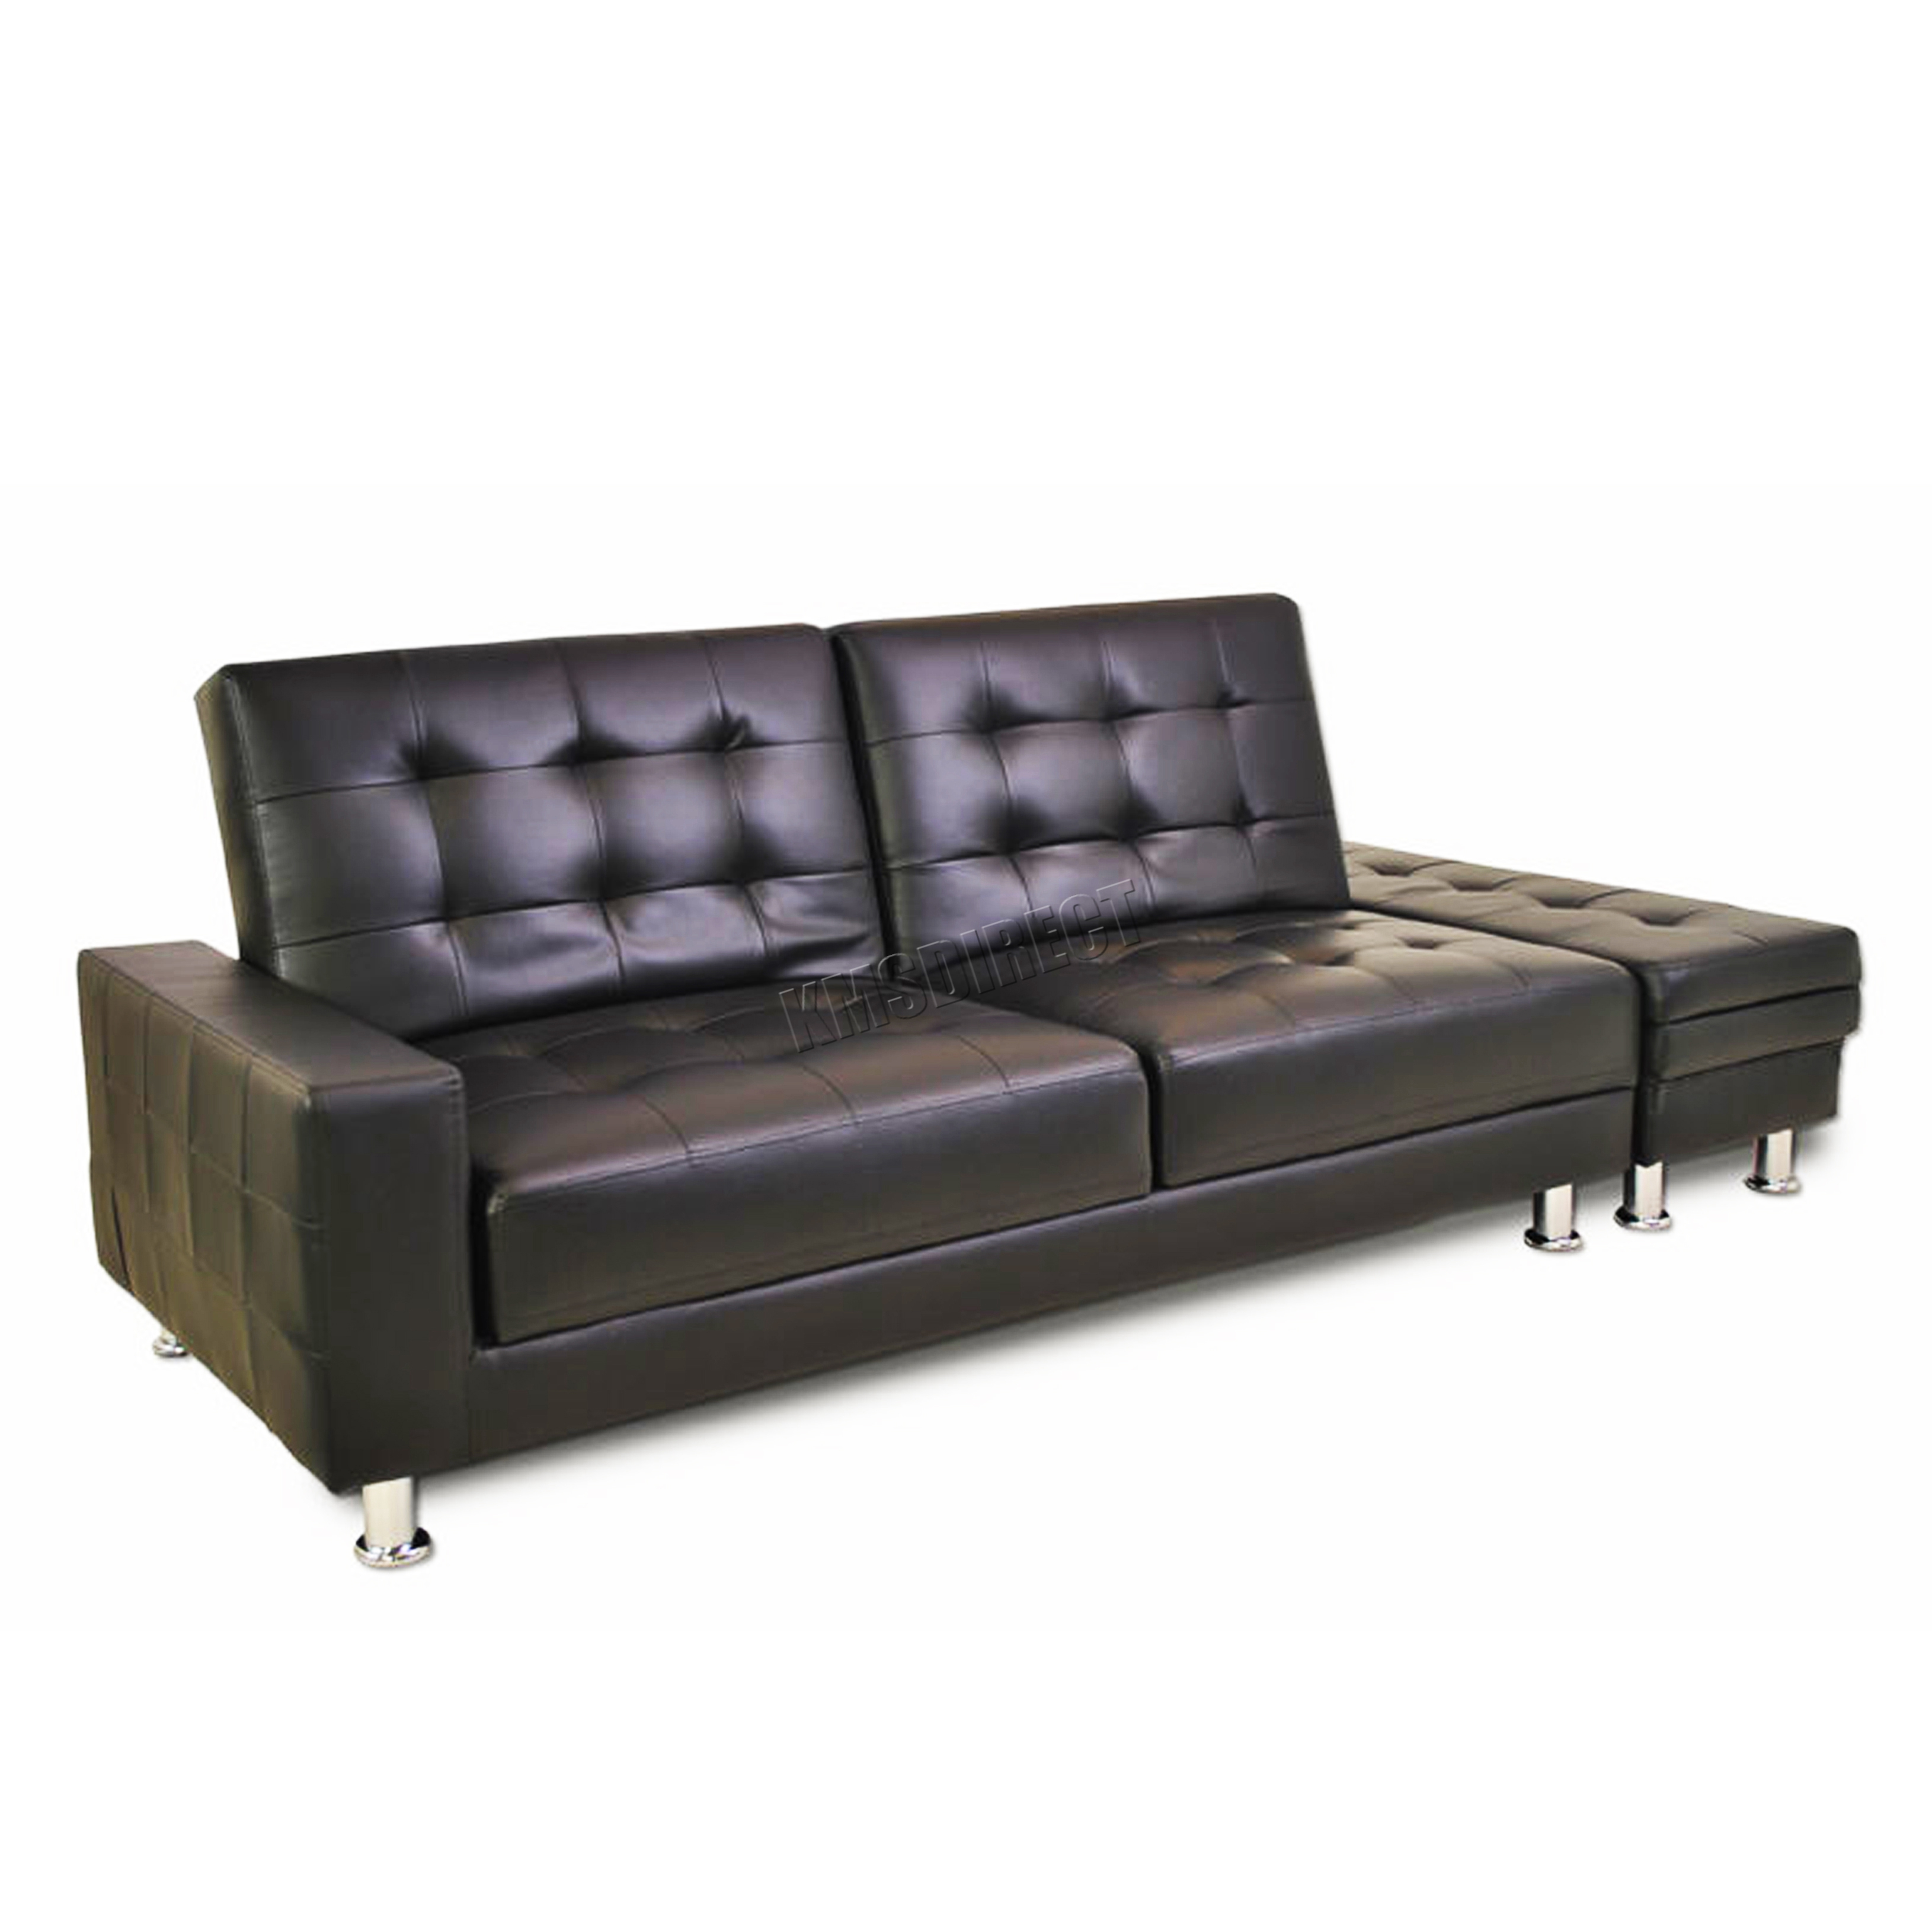 Sofa Bed 150cm Wide The Millbrook Sofa Bed Expert Thesofa